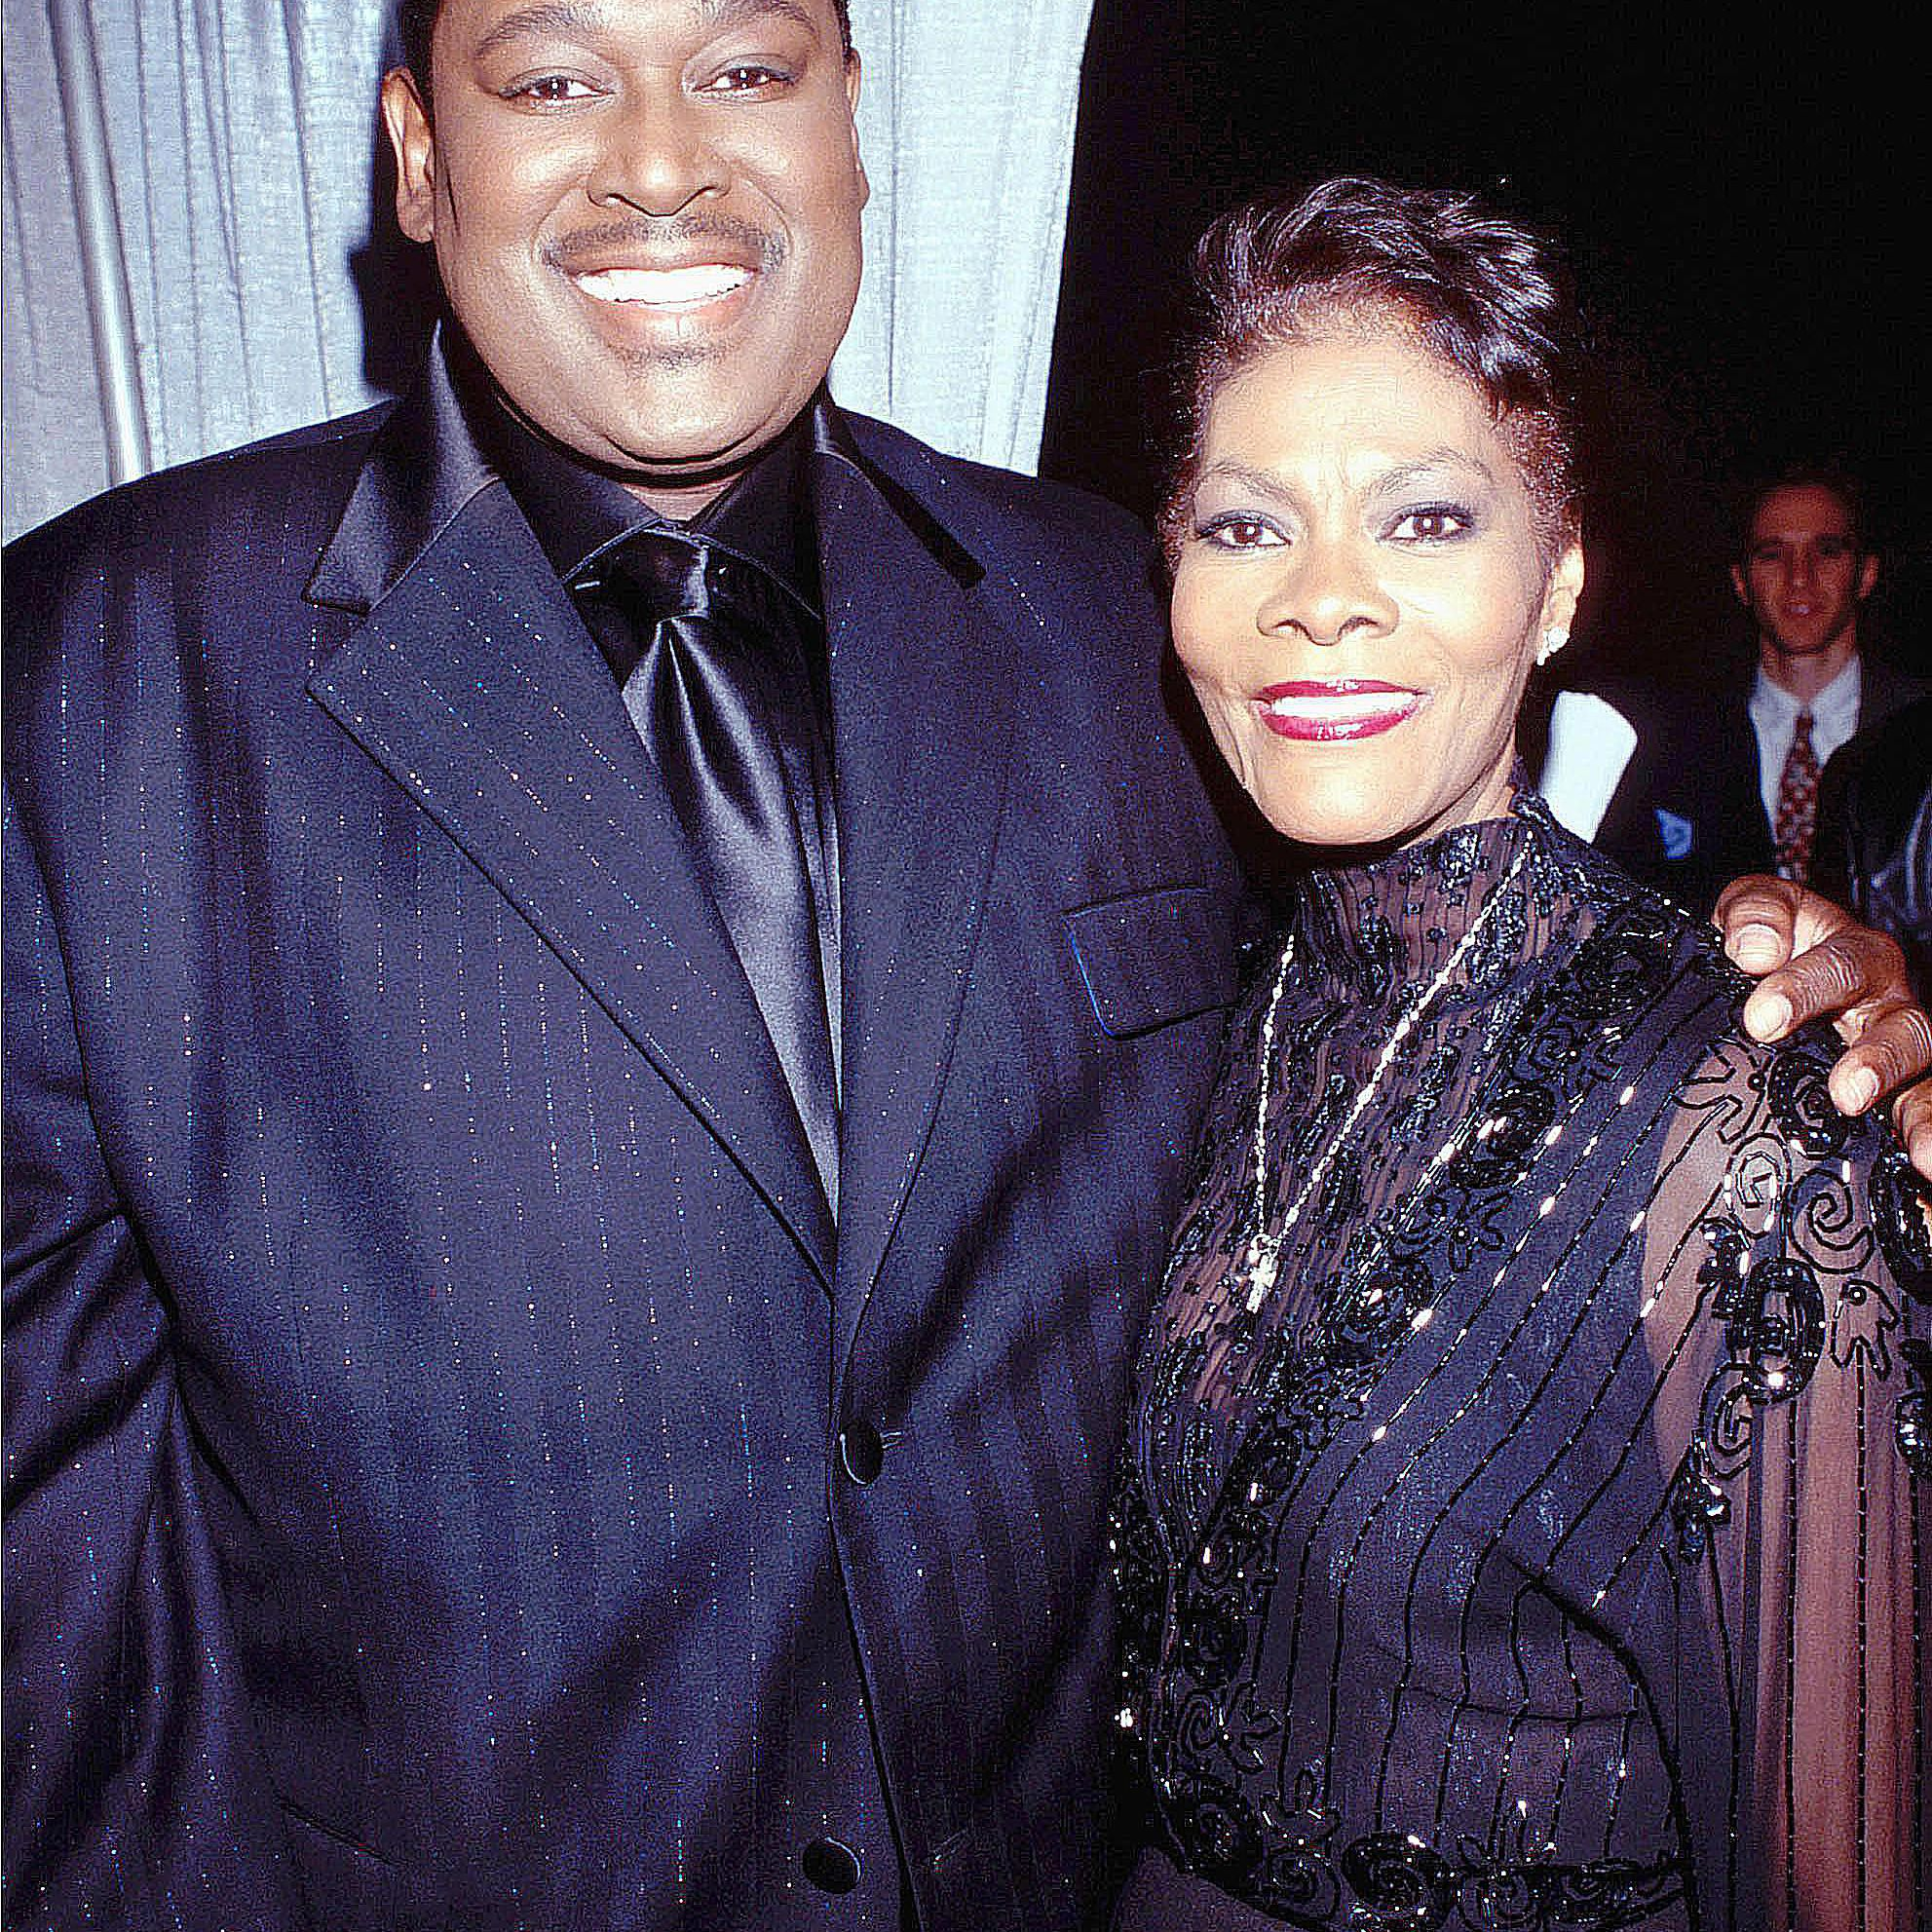 Luther Vandross and Dionne Warwick